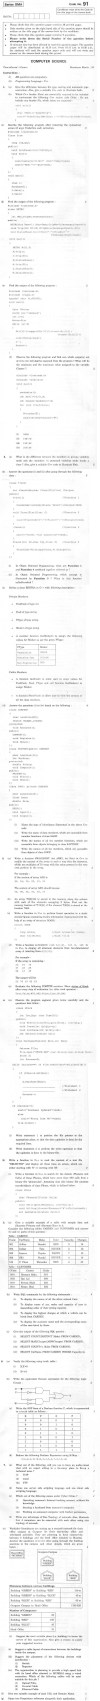 CBSE Class XII Previous Year Question Paper 2012: Computer Science